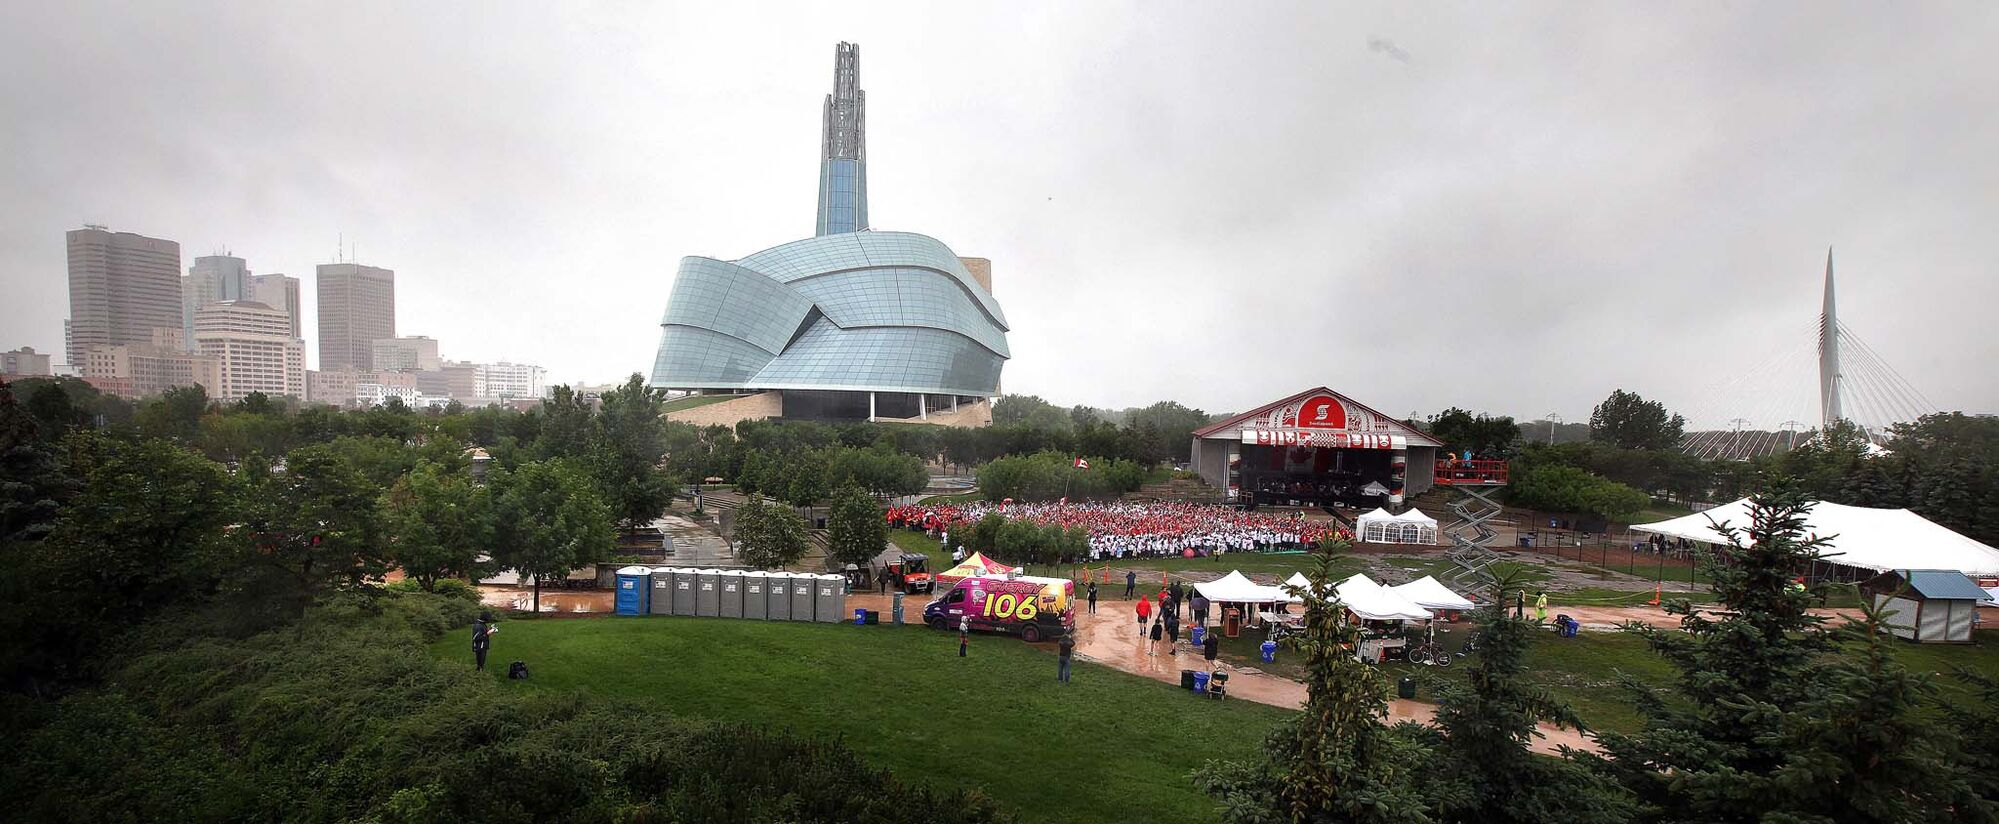 Nestled in the greenery of the Forks and with the city skyline as a backdrop,  a human flag is formed despite the weather at the Forks Tuesday. (Phil Hossack / Winnipeg Free Press)